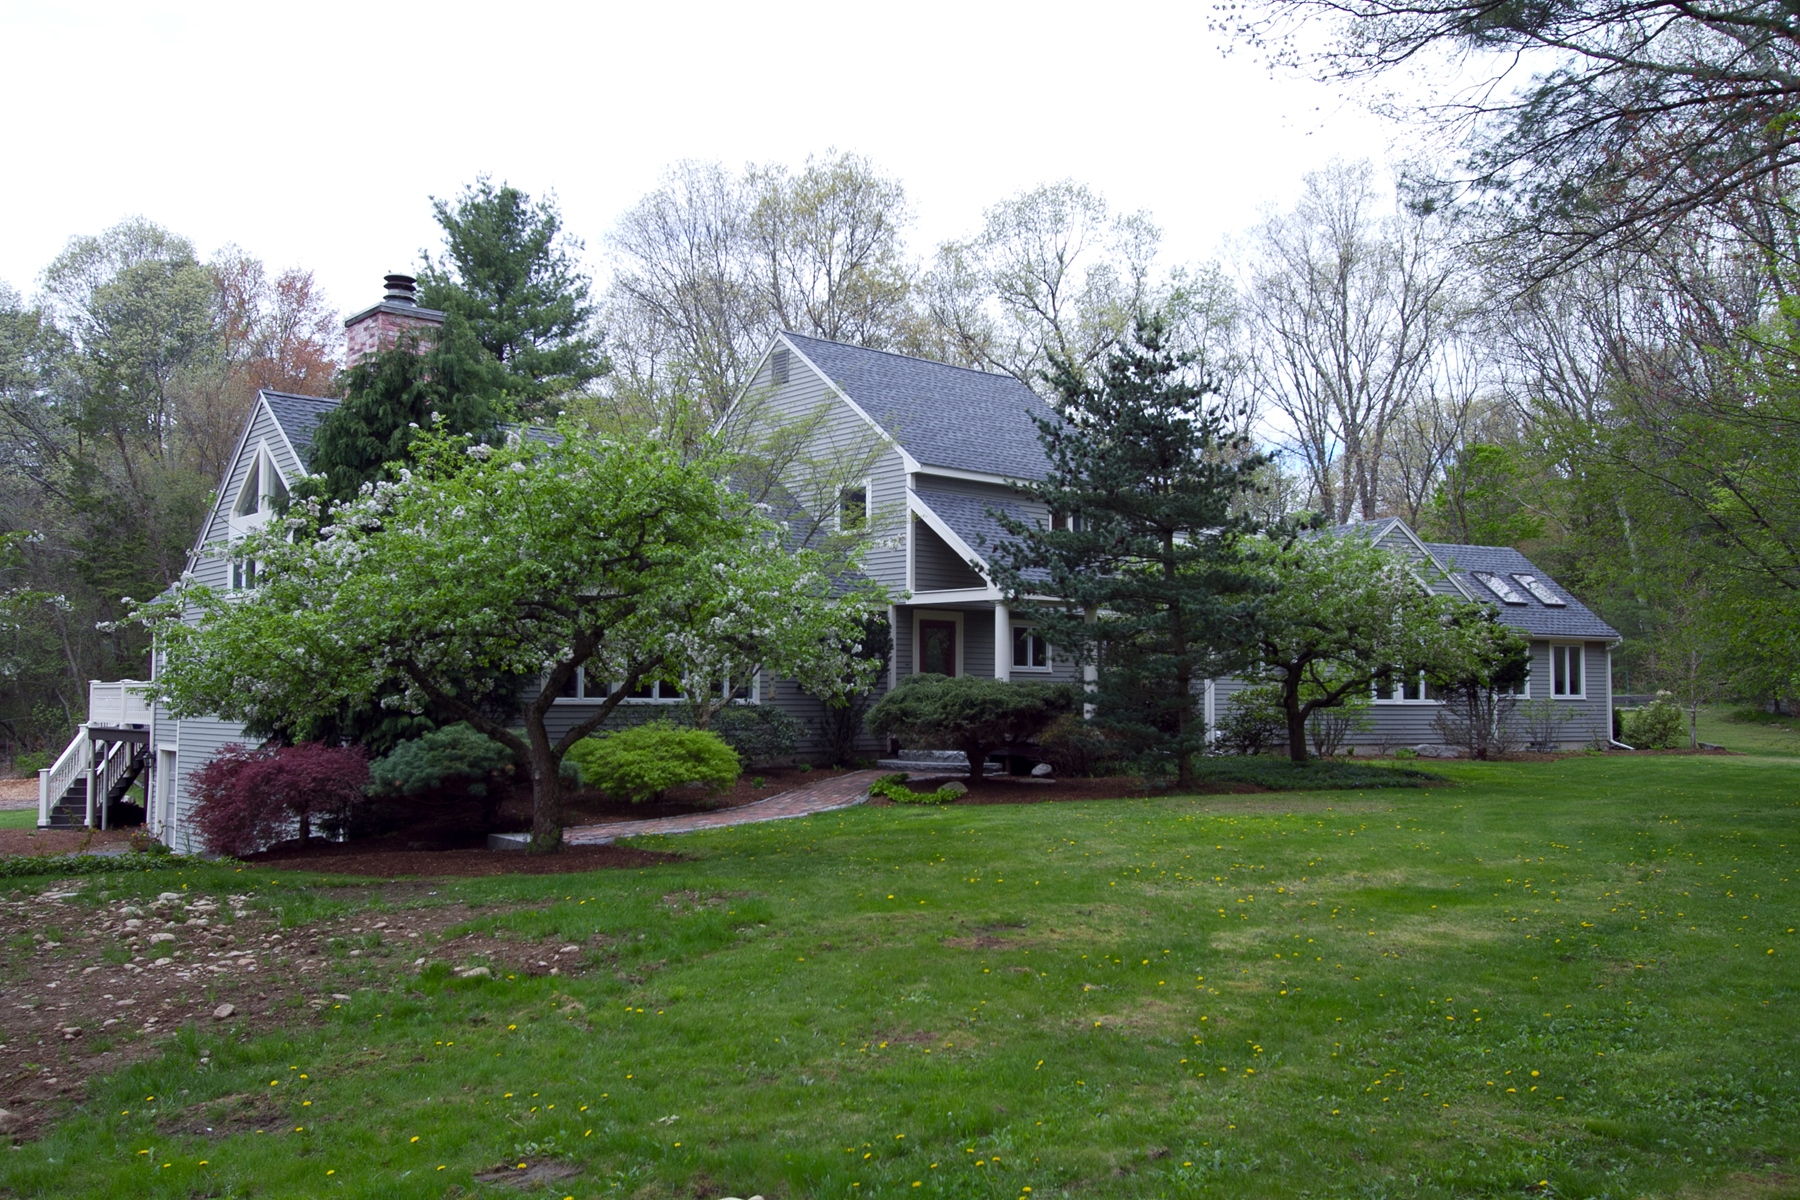 Single Family Home for Sale at Stunning Contemporary on Wooded Estate 137 South Street Holliston, 01746 United States